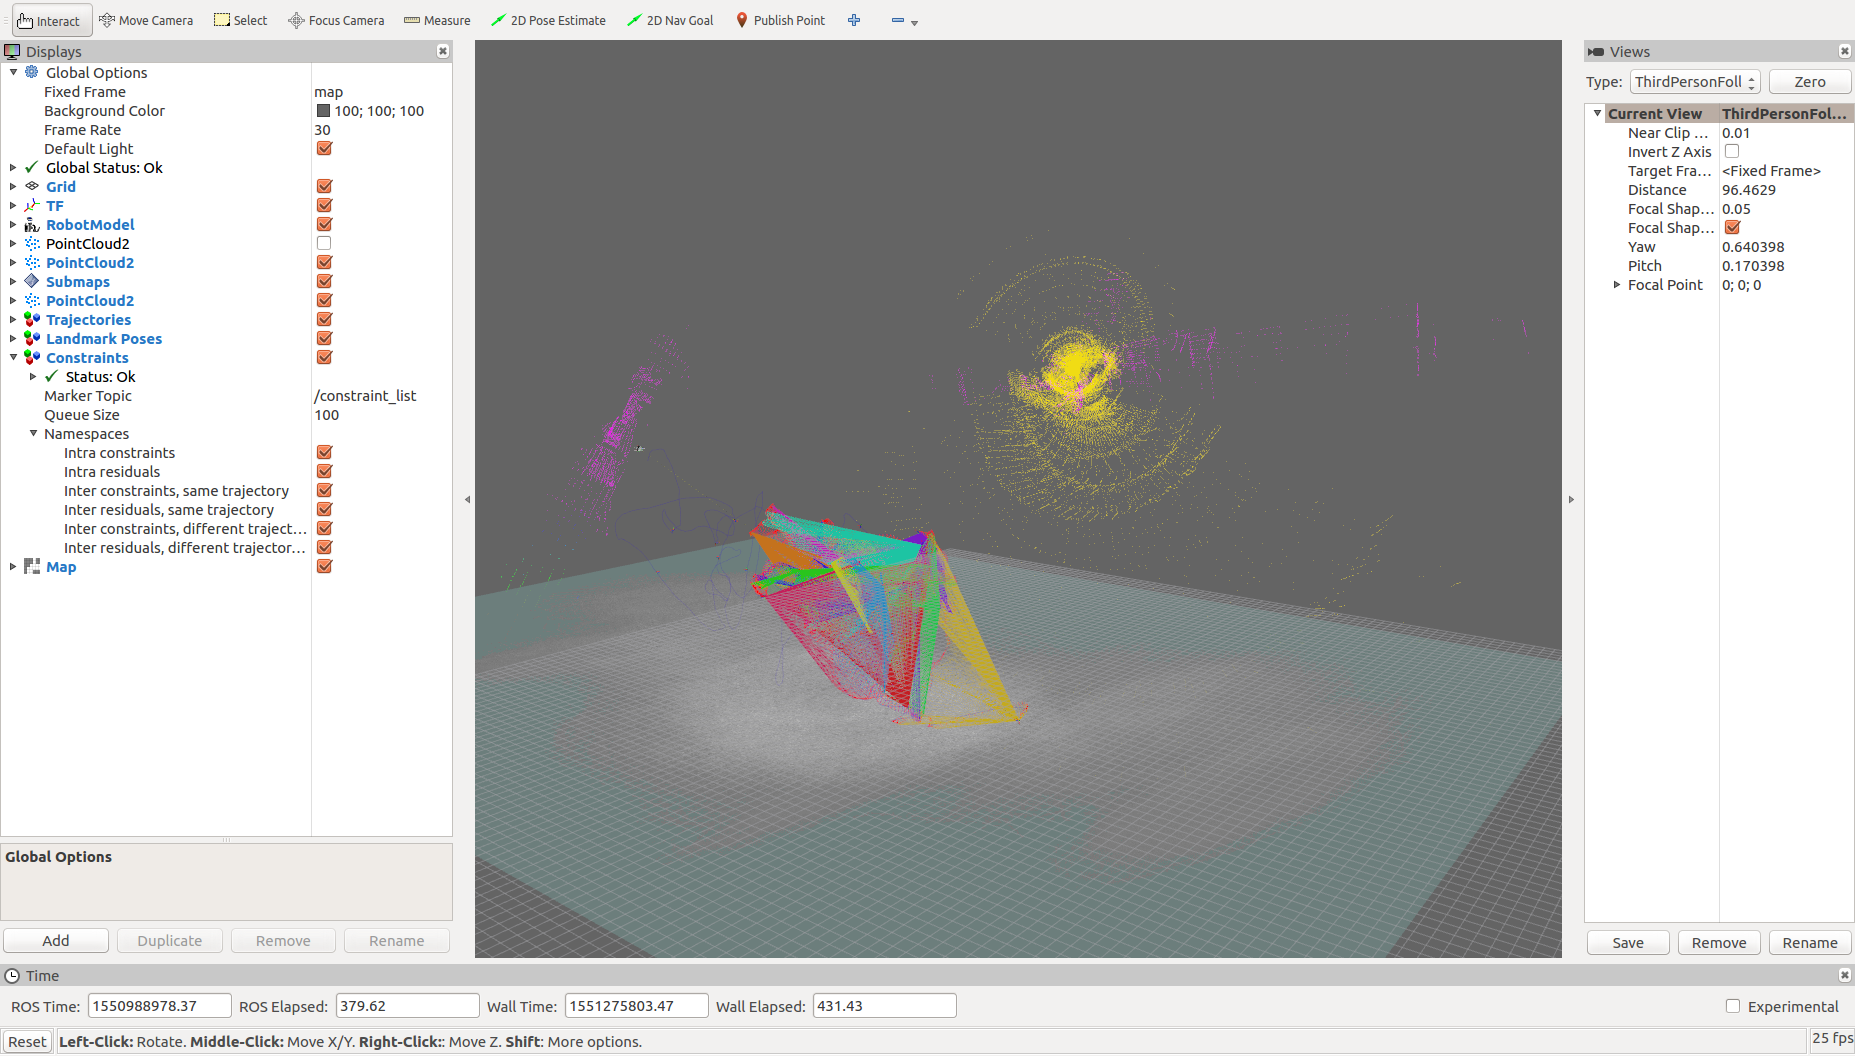 How can I get a 3D pointcloud map using cartographer